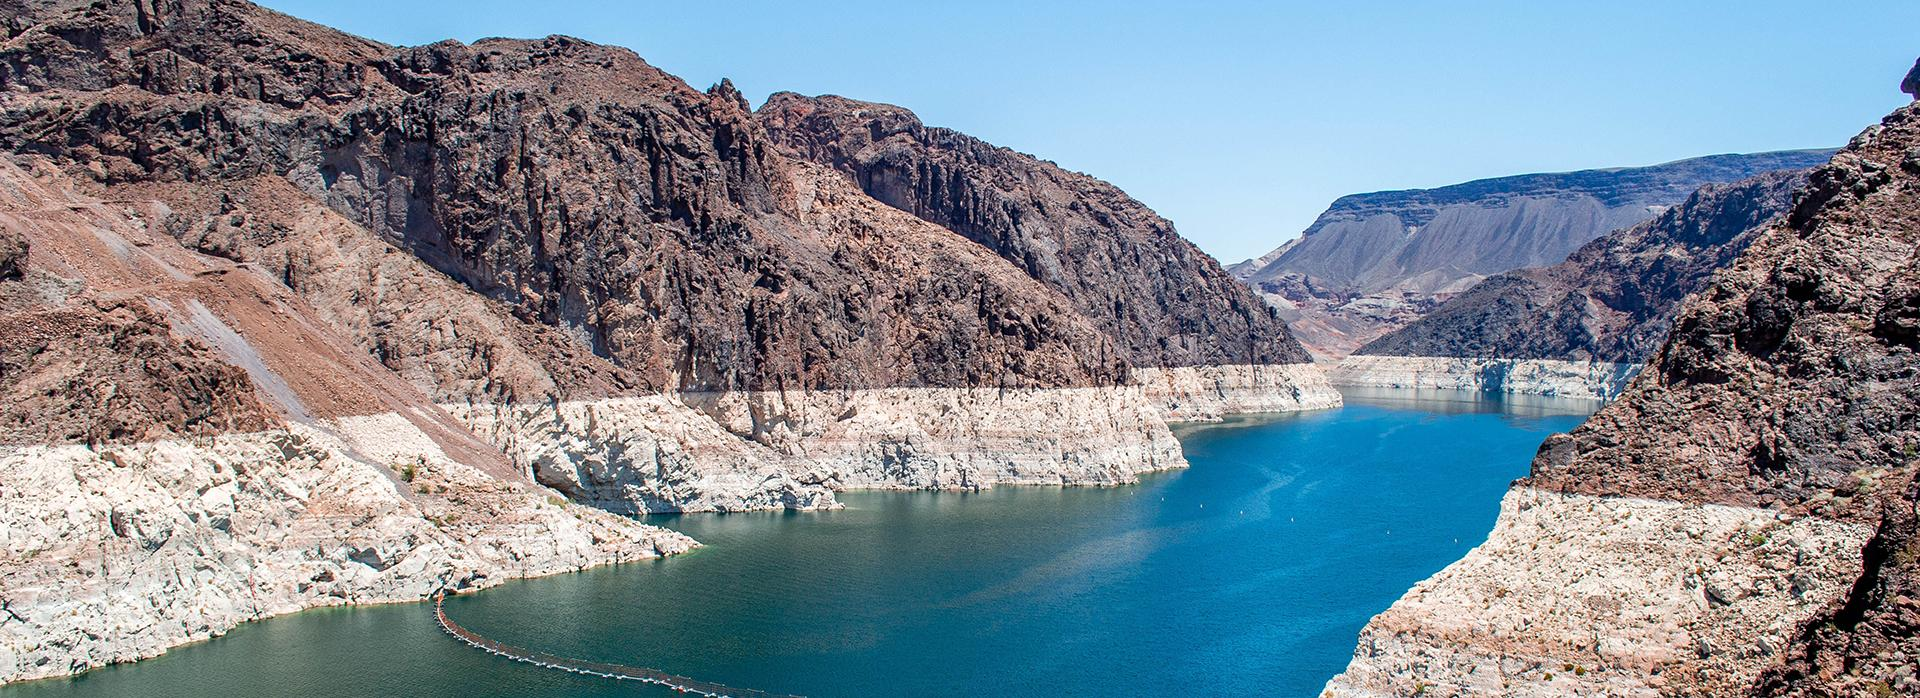 Lake Mead Bright